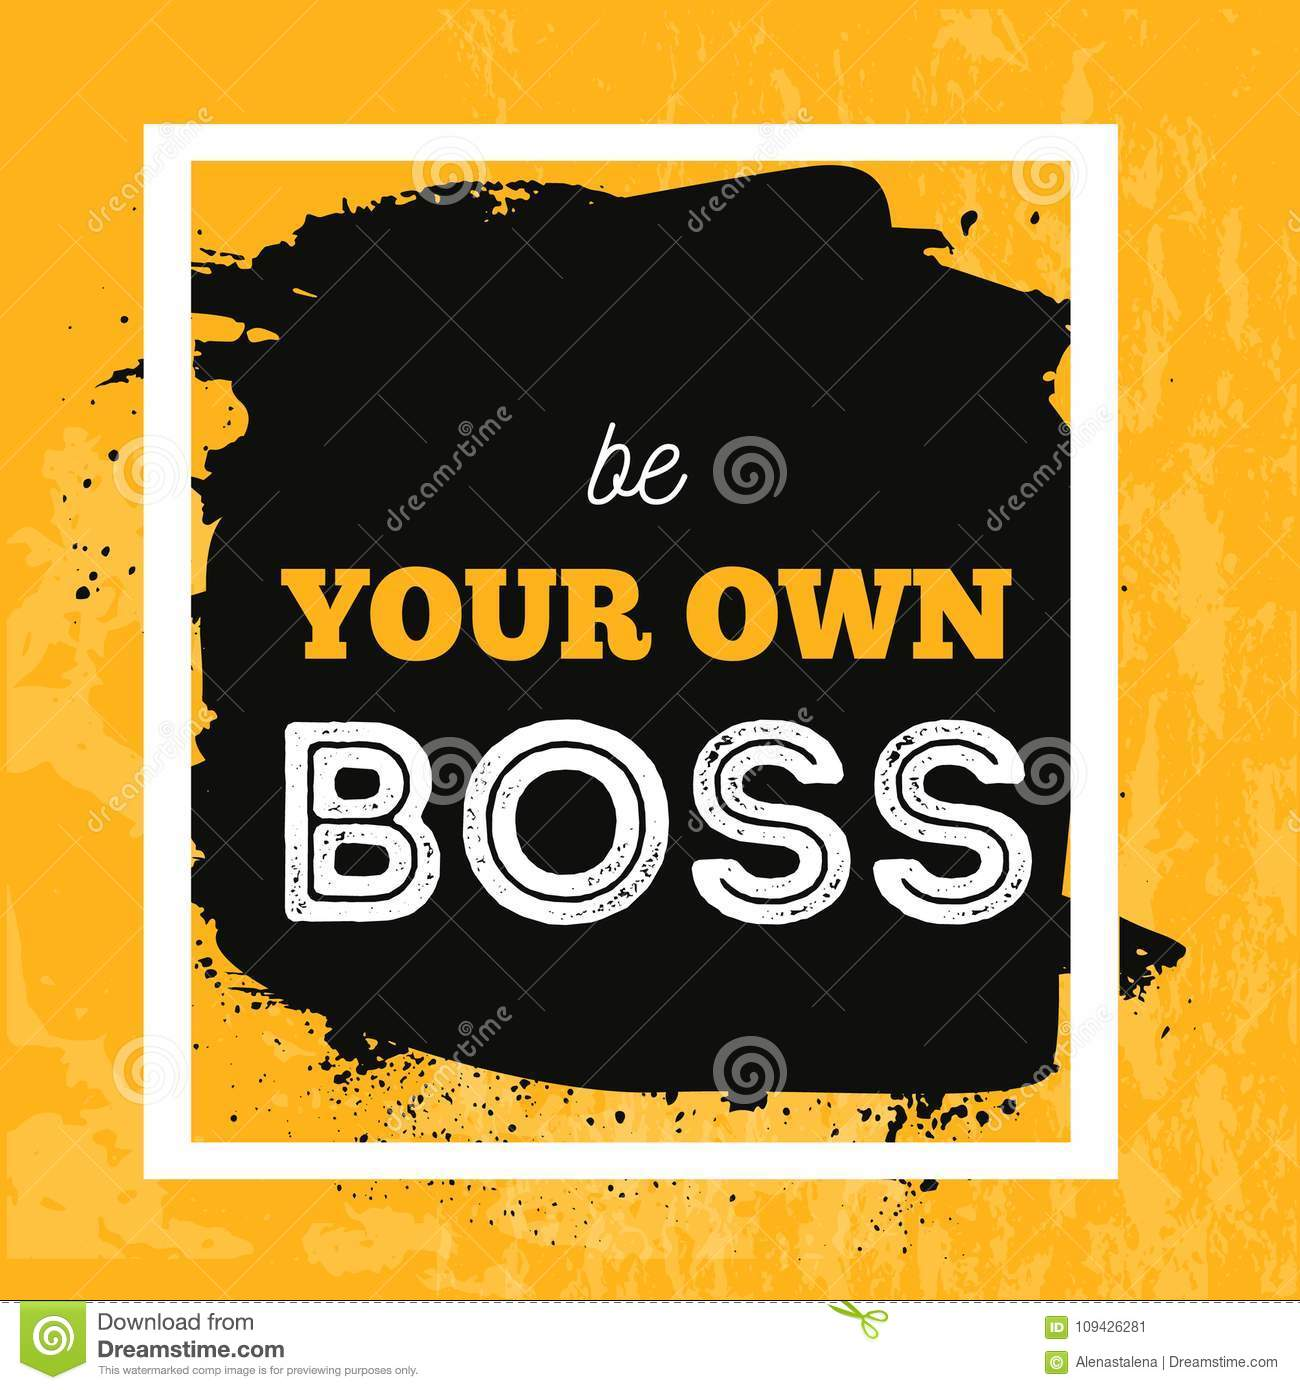 Be Your Own Boss Inspirational Poster Design Perfect For Greeting